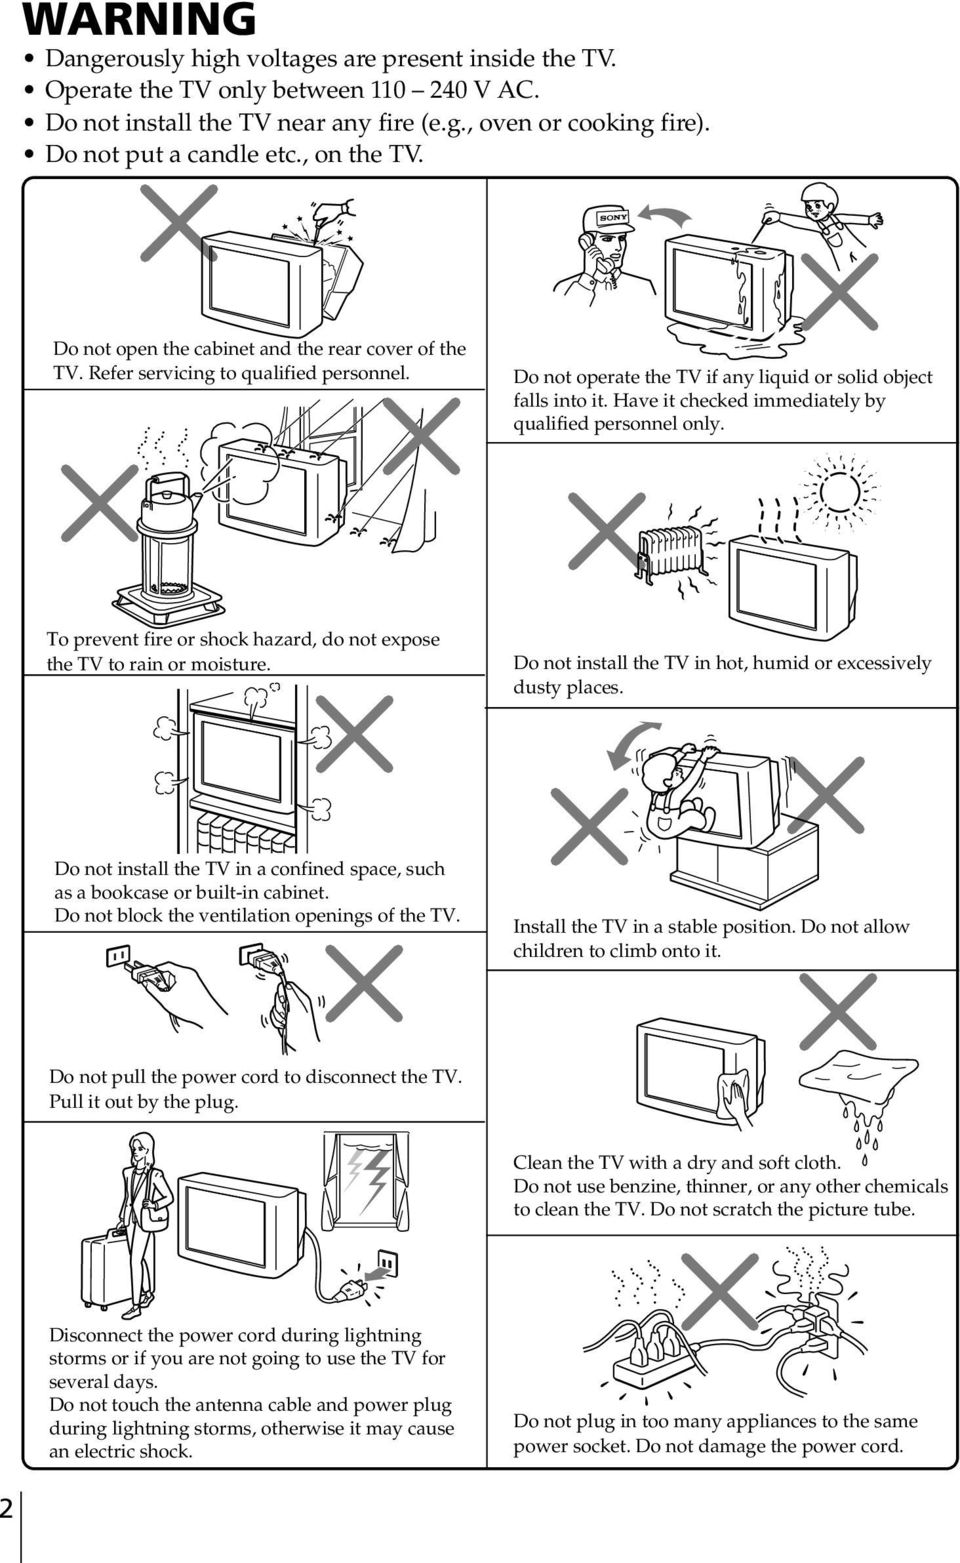 Have it checked immediately y qualified personnel only. To prevent fire or shock hazard, do not expose the TV to rain or moisture. Do not install the TV in hot, humid or excessively dusty places.